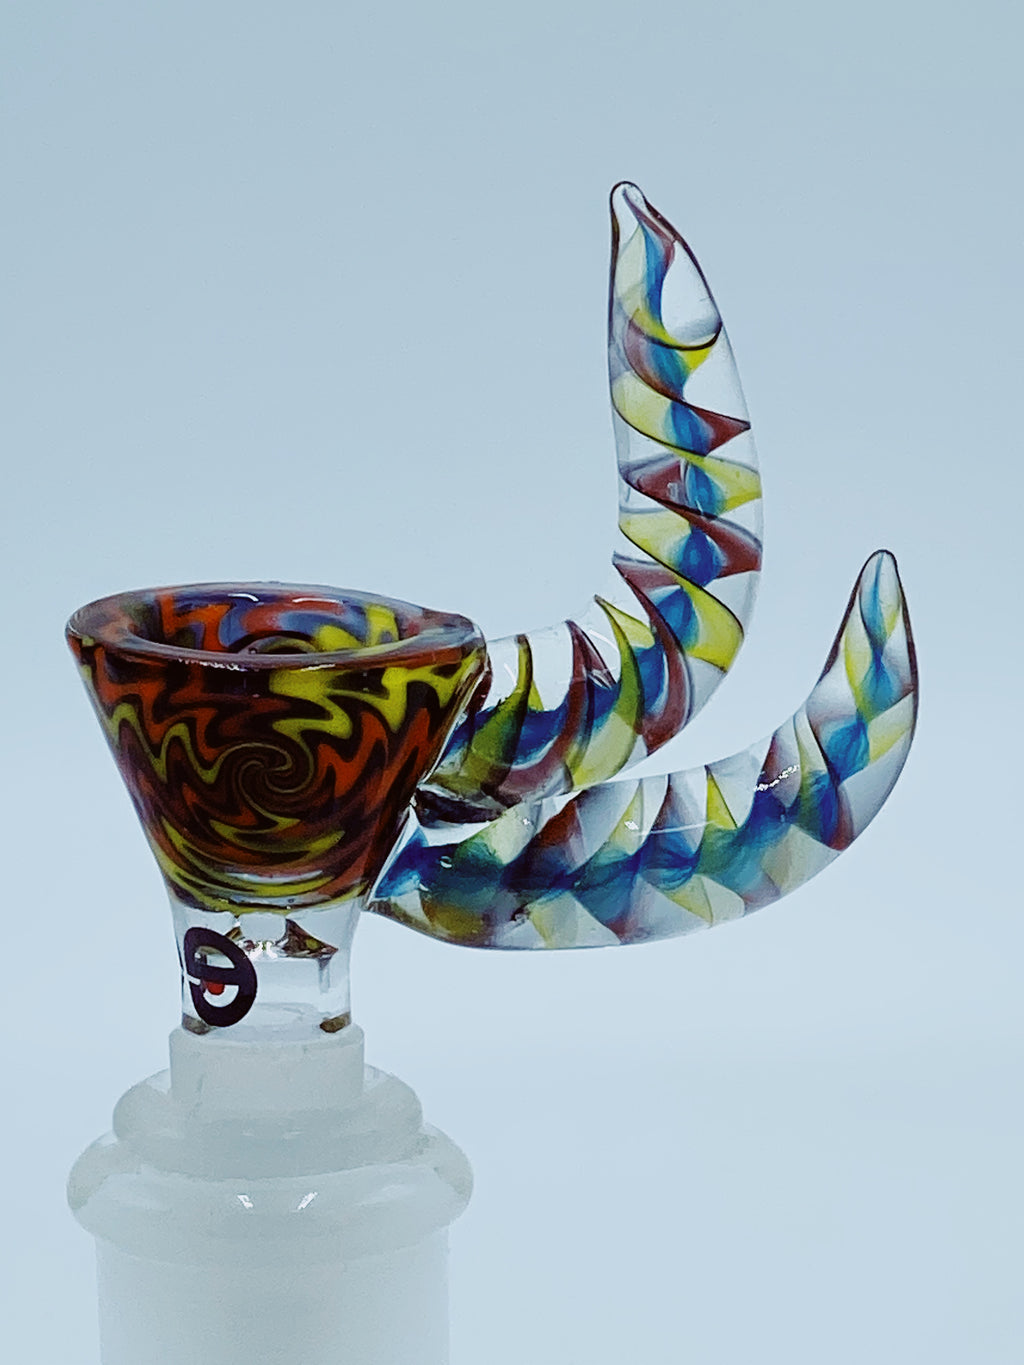 CHEECH DOUBLE HORN 14MM BOWL - Smoke Country - Land of the artistic glass blown bongs